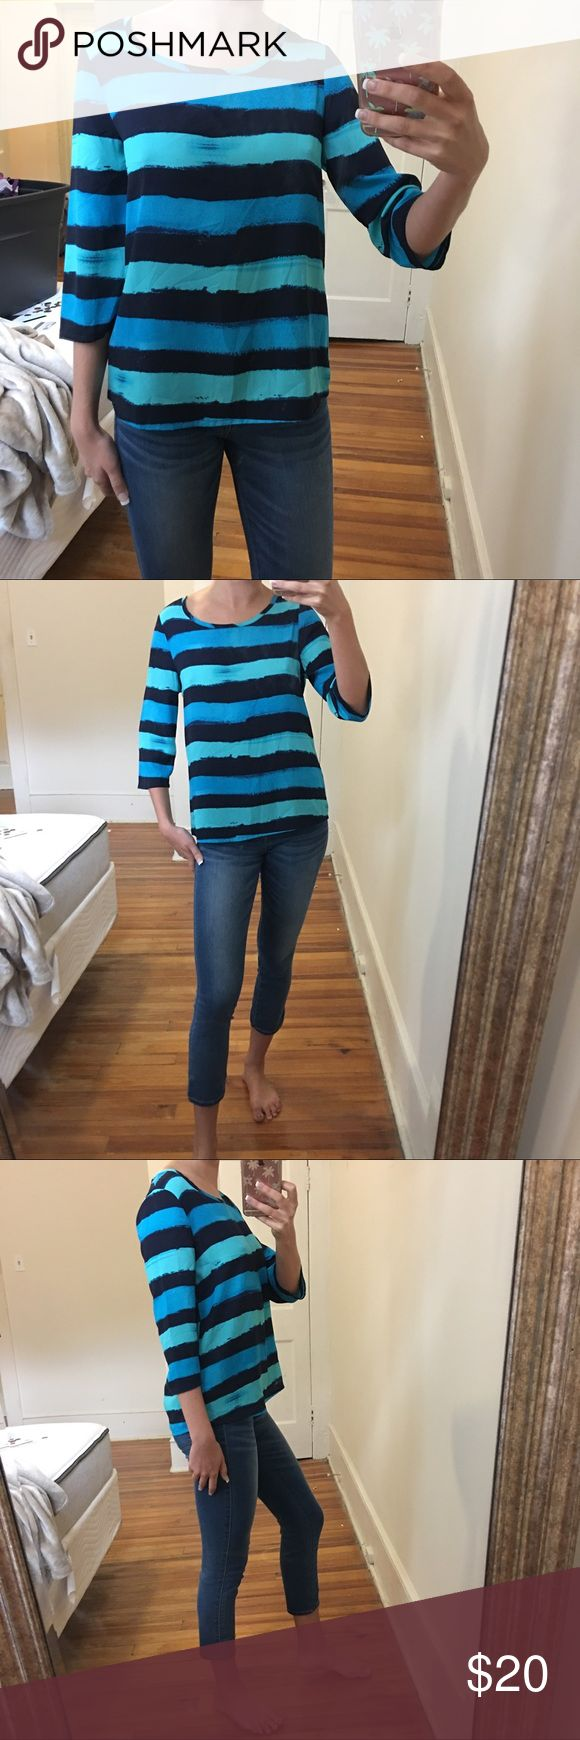 I just added this listing on Poshmark: Express turquoise blue striped blouse top. #shopmycloset #poshmark #fashion #shopping #style #forsale #Express #Tops